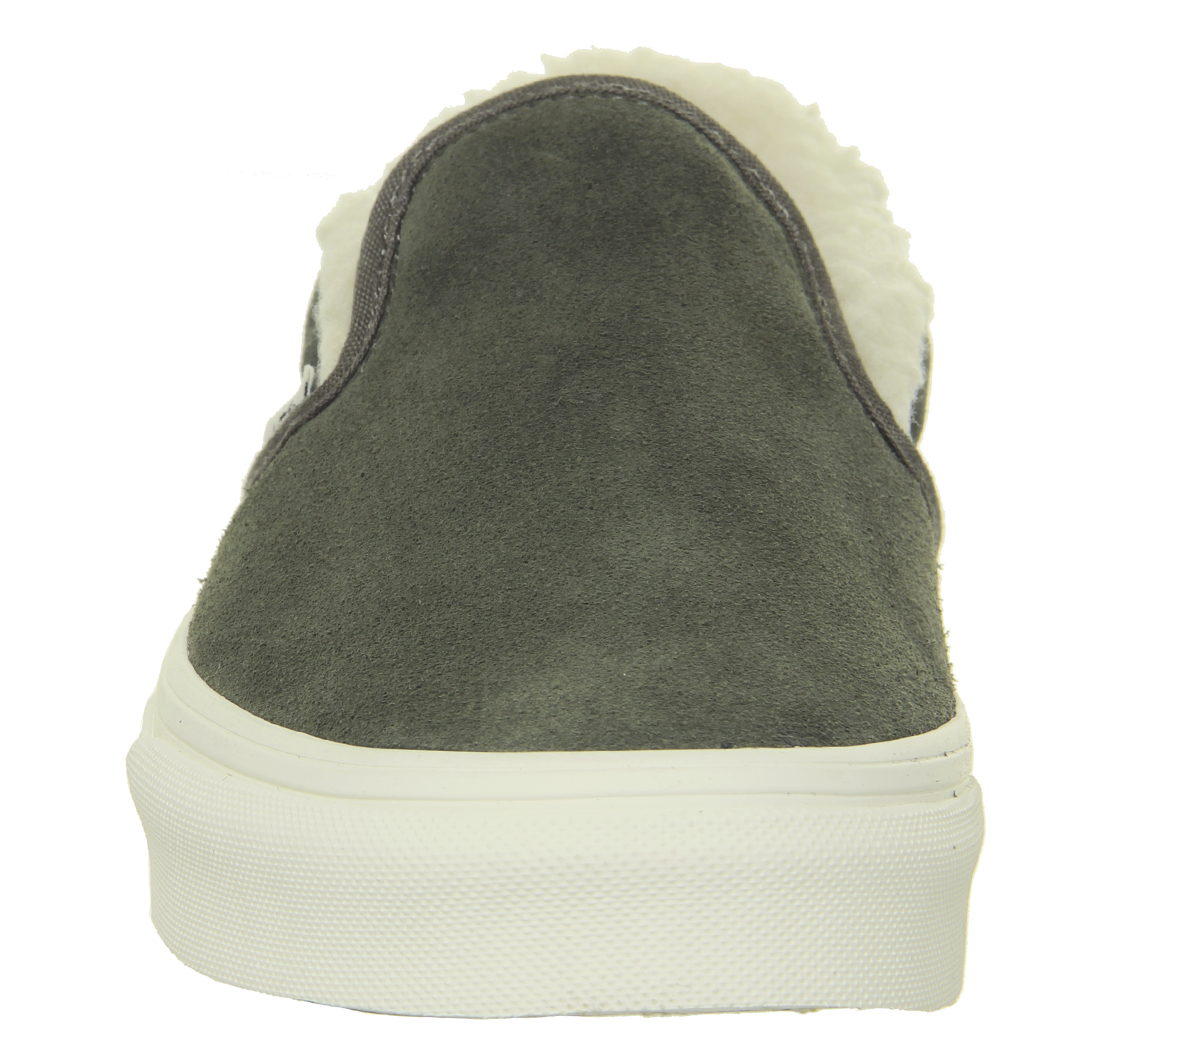 dff1bb29195 Sentinel Womens Vans Vans Classic Slip On Trainers Grape Leaf Dusty Olive  Sherpa Trainers